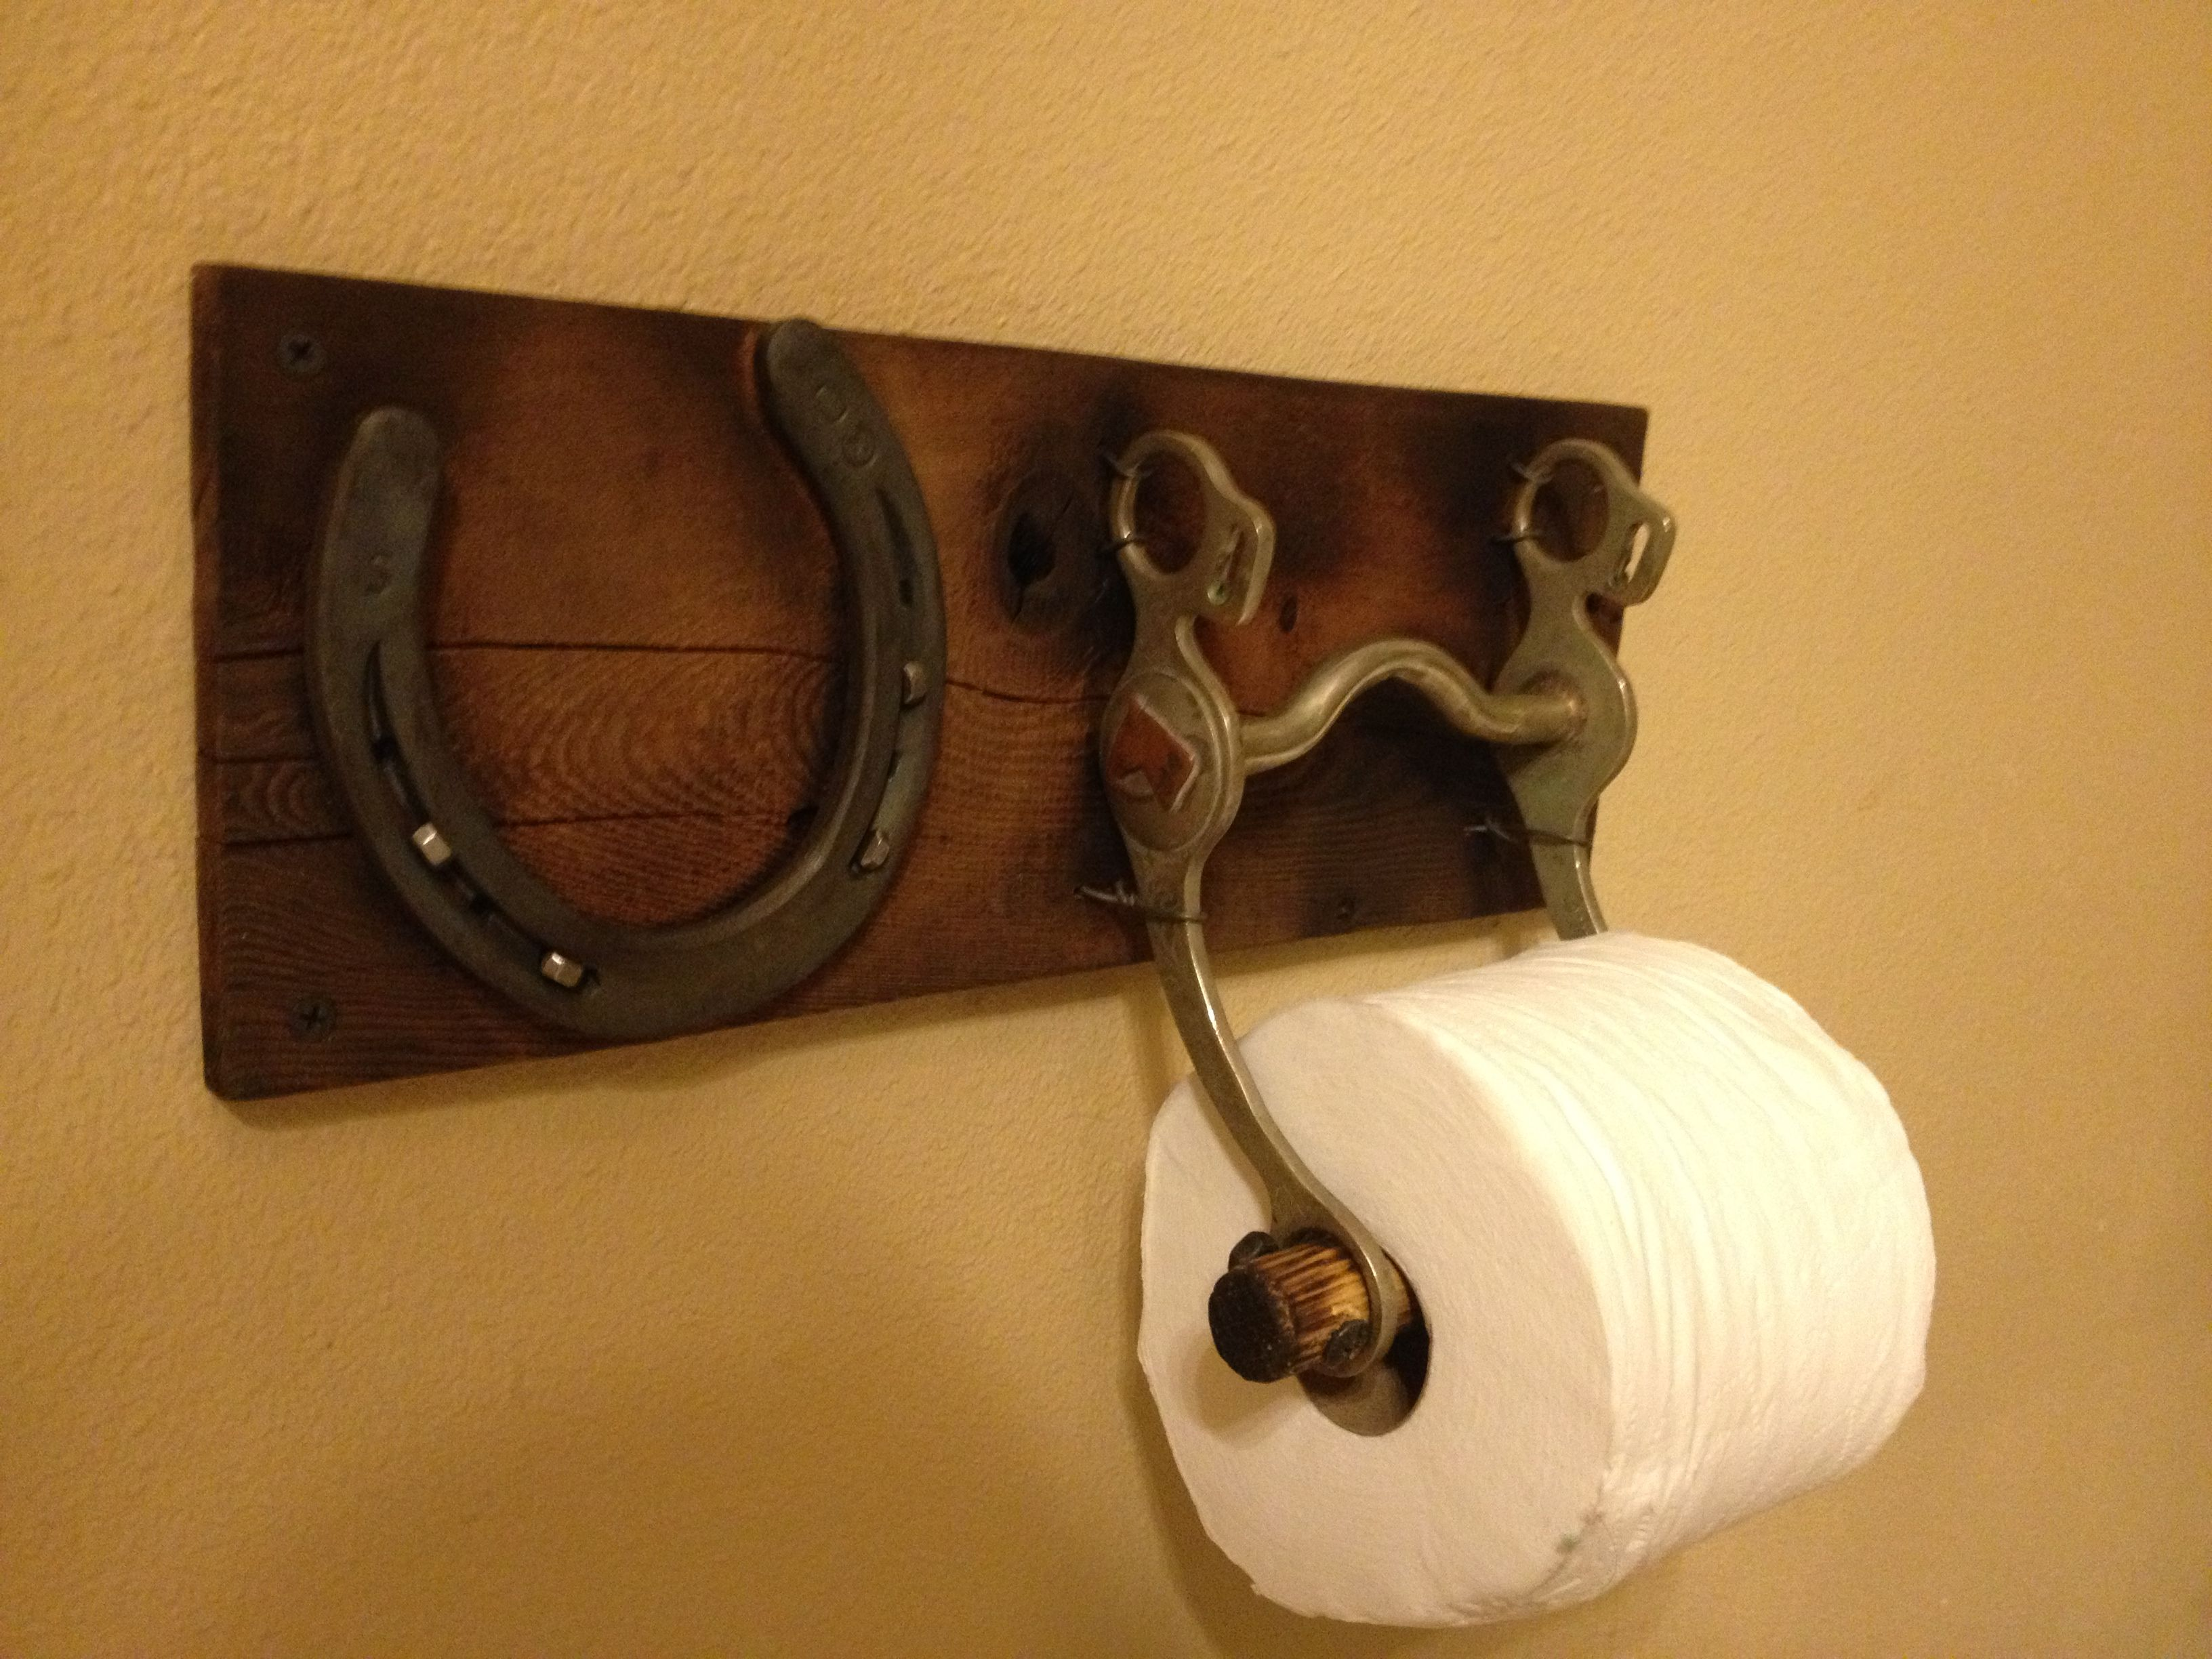 294 best horseshoe crafts images on pinterest horseshoe crafts toilet paper holder with an old horse bit and horse shoe pamela culligan barn bathroombathroom ideasman cave